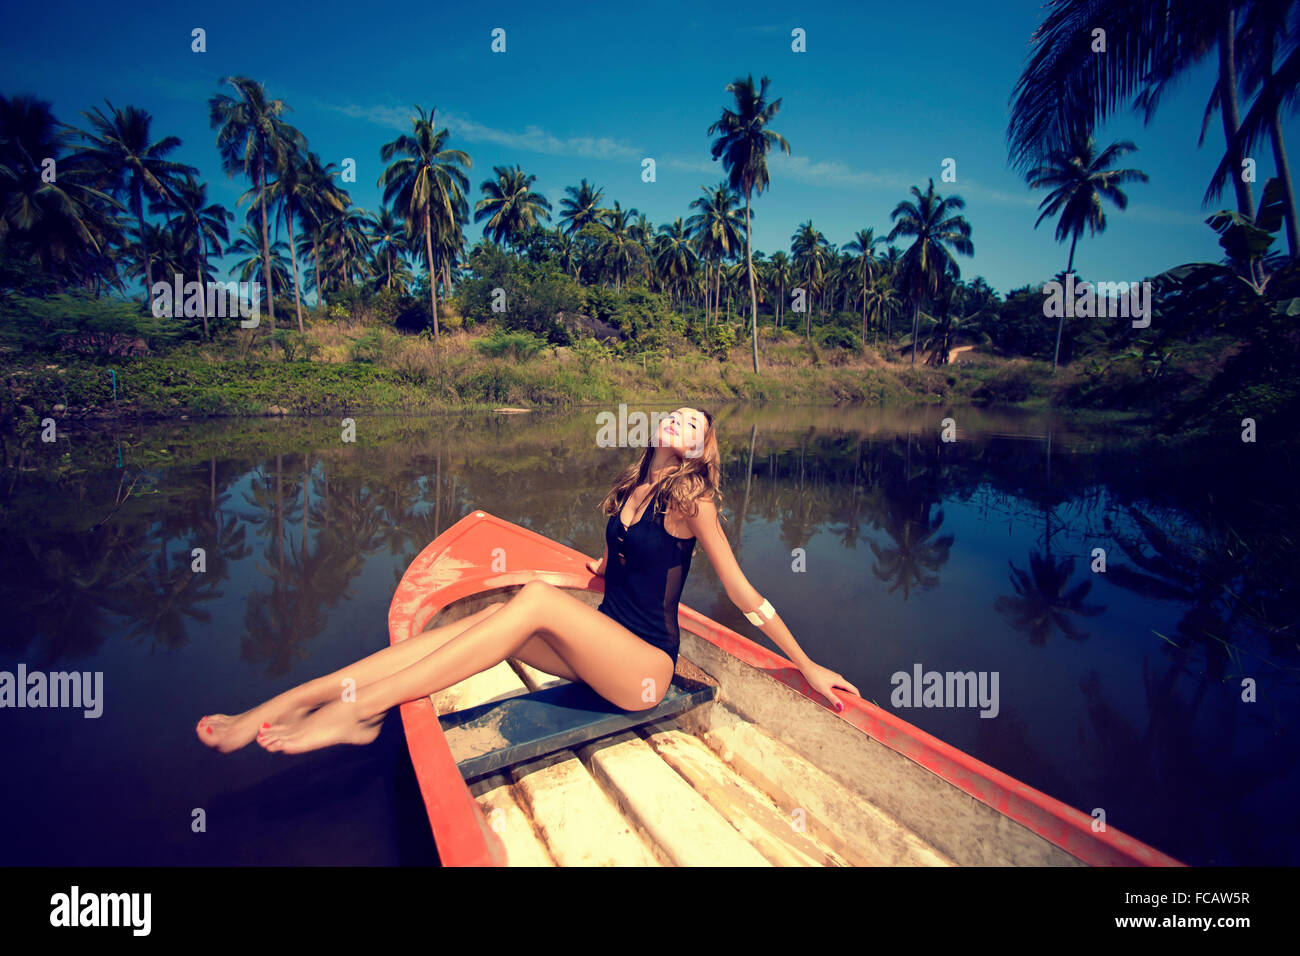 woman posing on boat - Stock Image